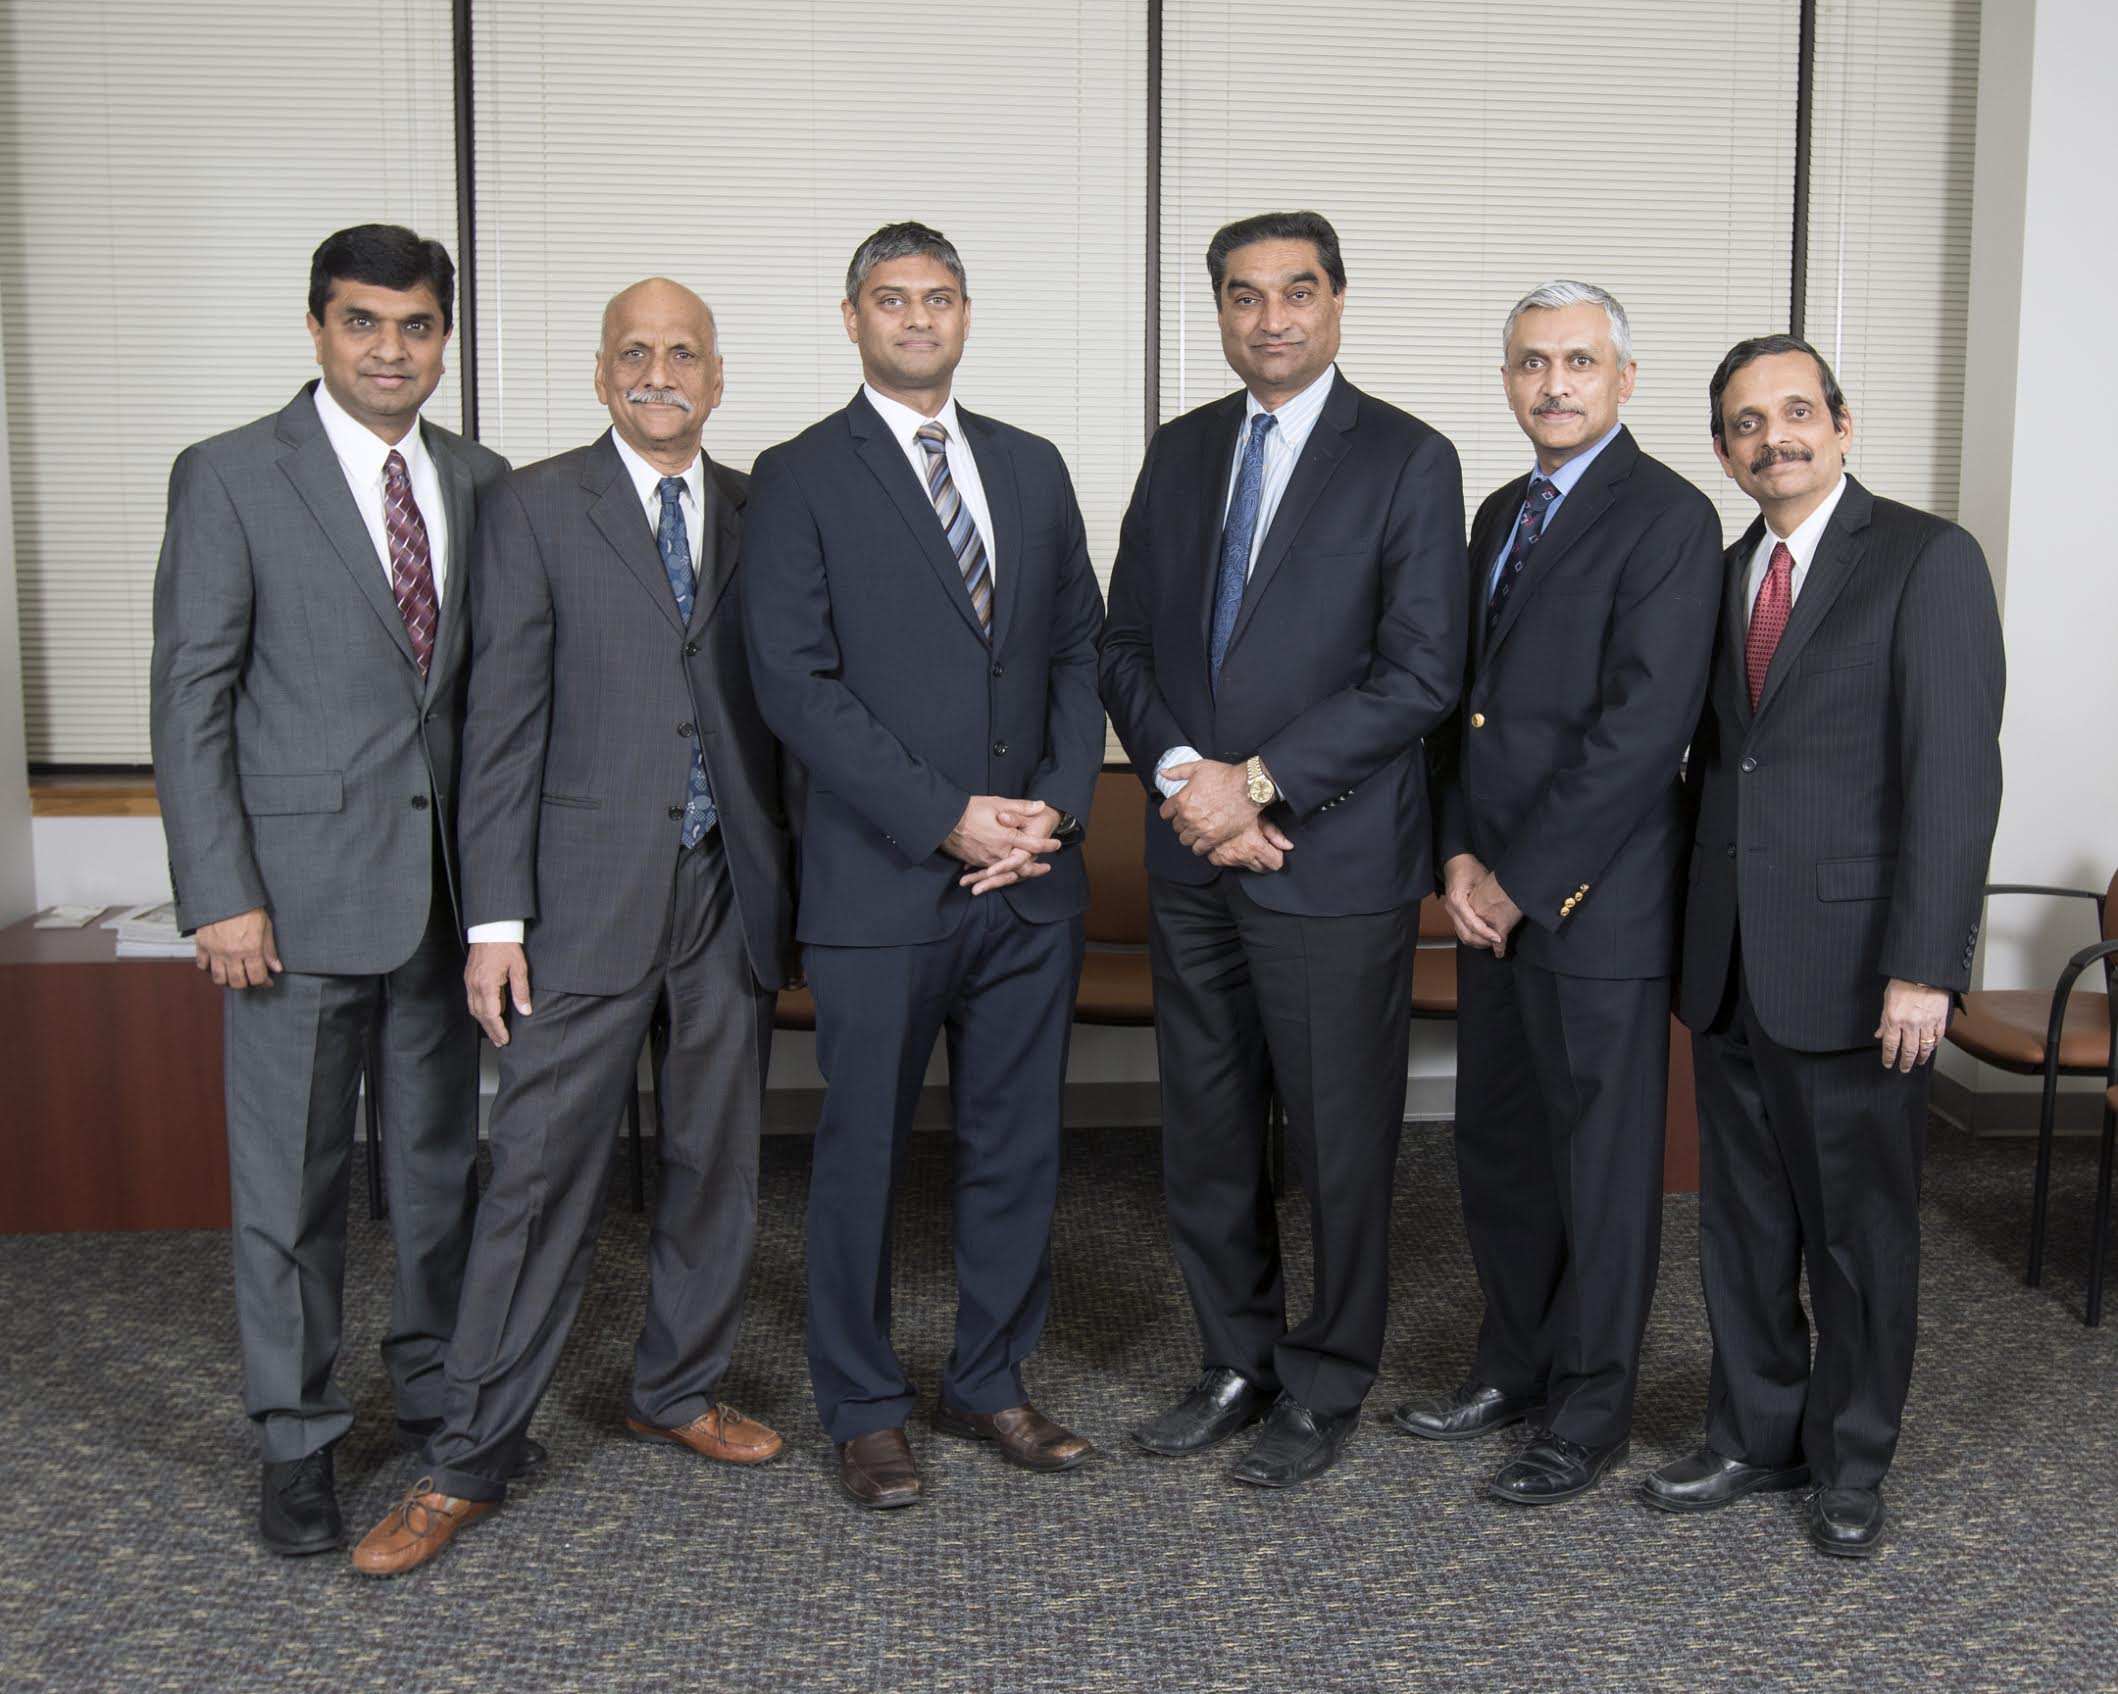 Bon Secours Medical Group >> Bon Secours Charity Health System Welcomes Cardiologists to Bon Secours Medical Group | The ...